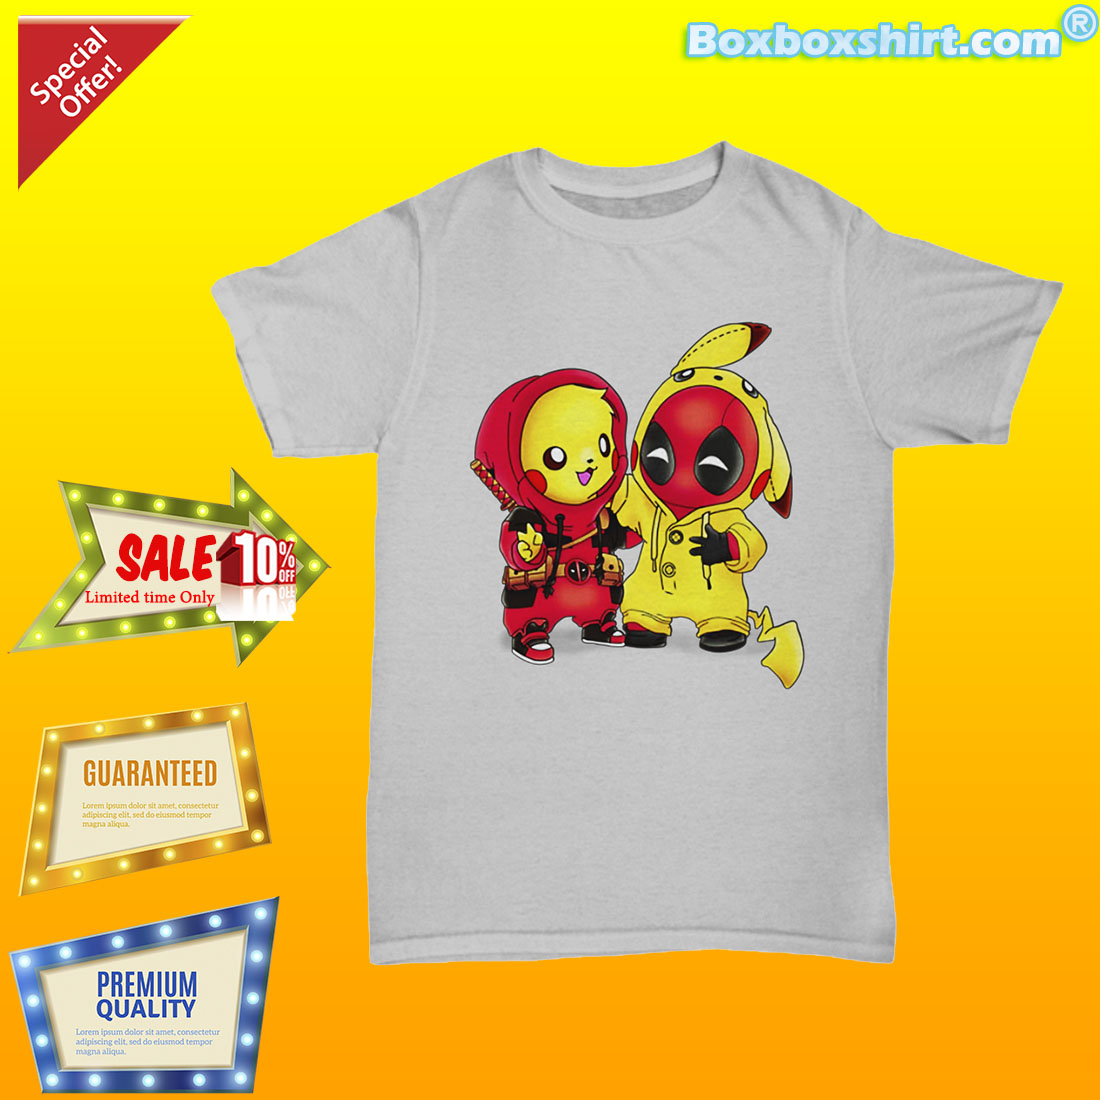 7fabc90c Pikapool Pikachu Pokemon and Deadpool Shirt - boxboxshirt's diary